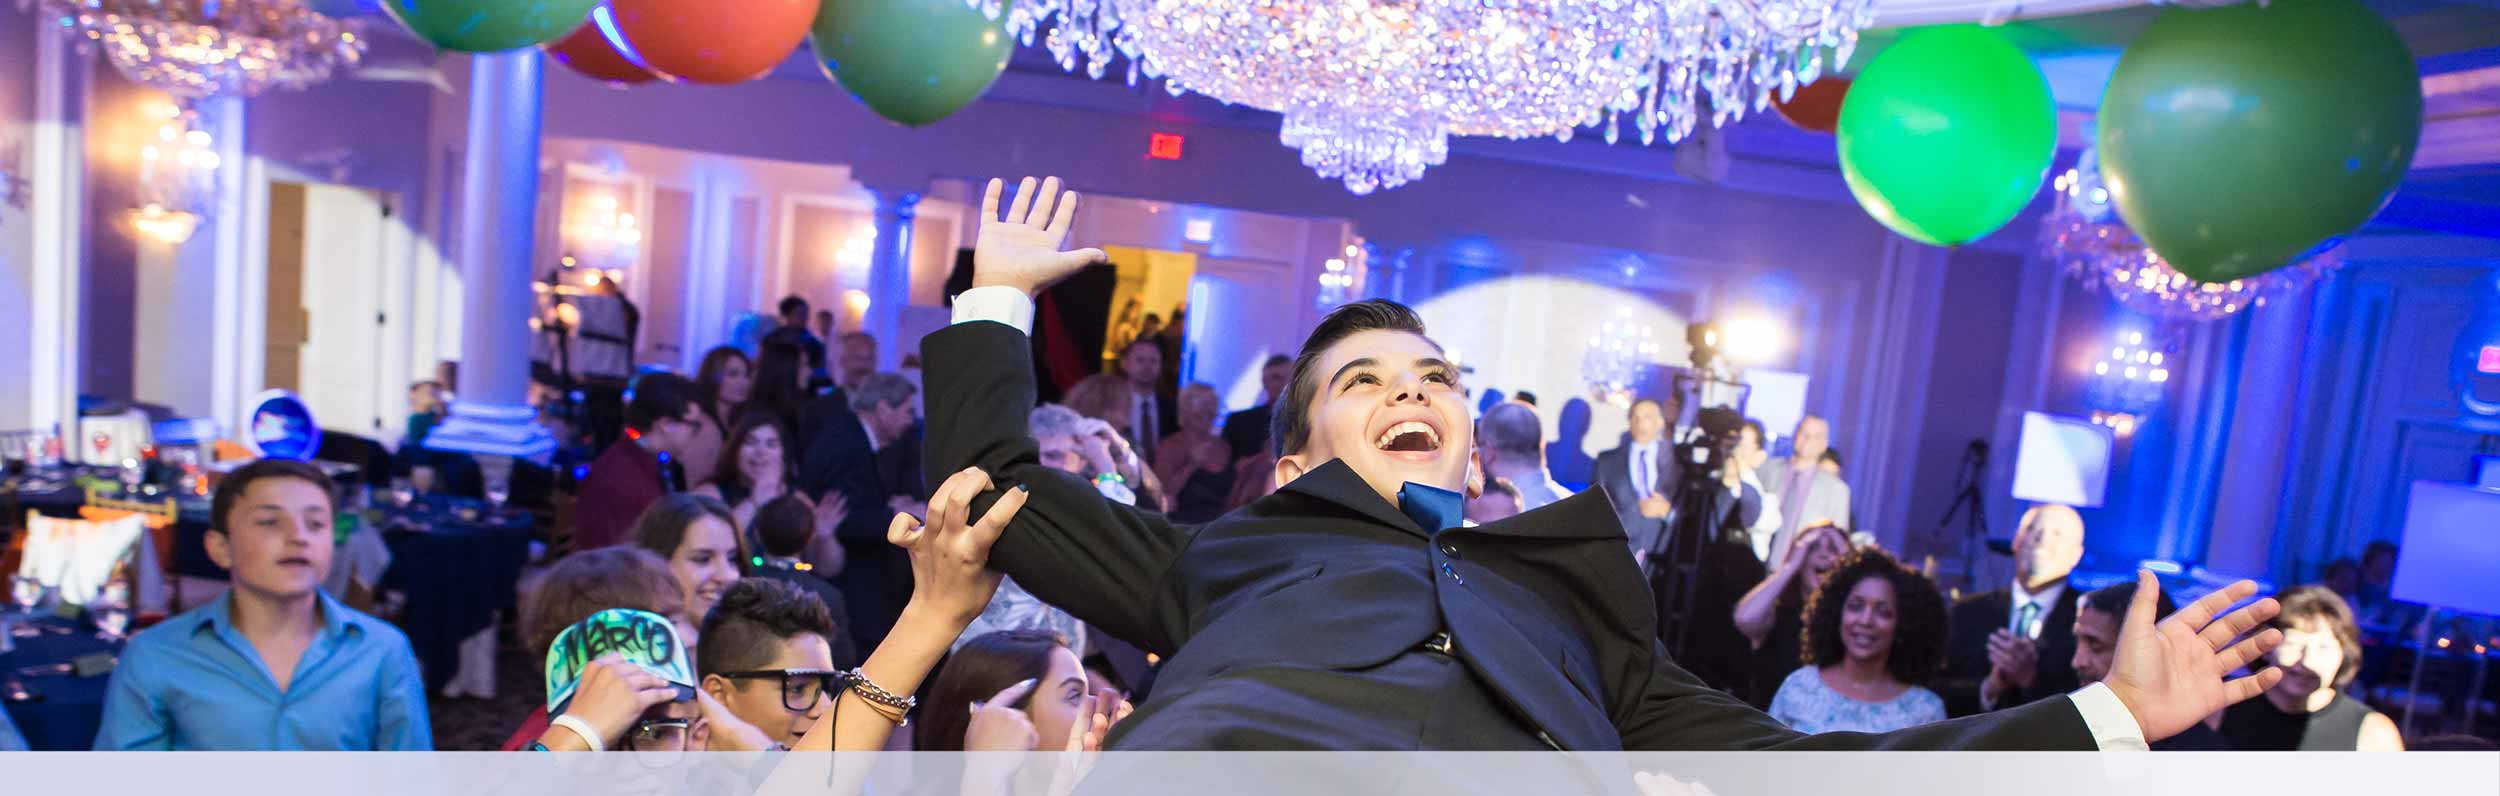 Gallery Banner 5 Teen Boy Being Lifted Bar Mitzvah